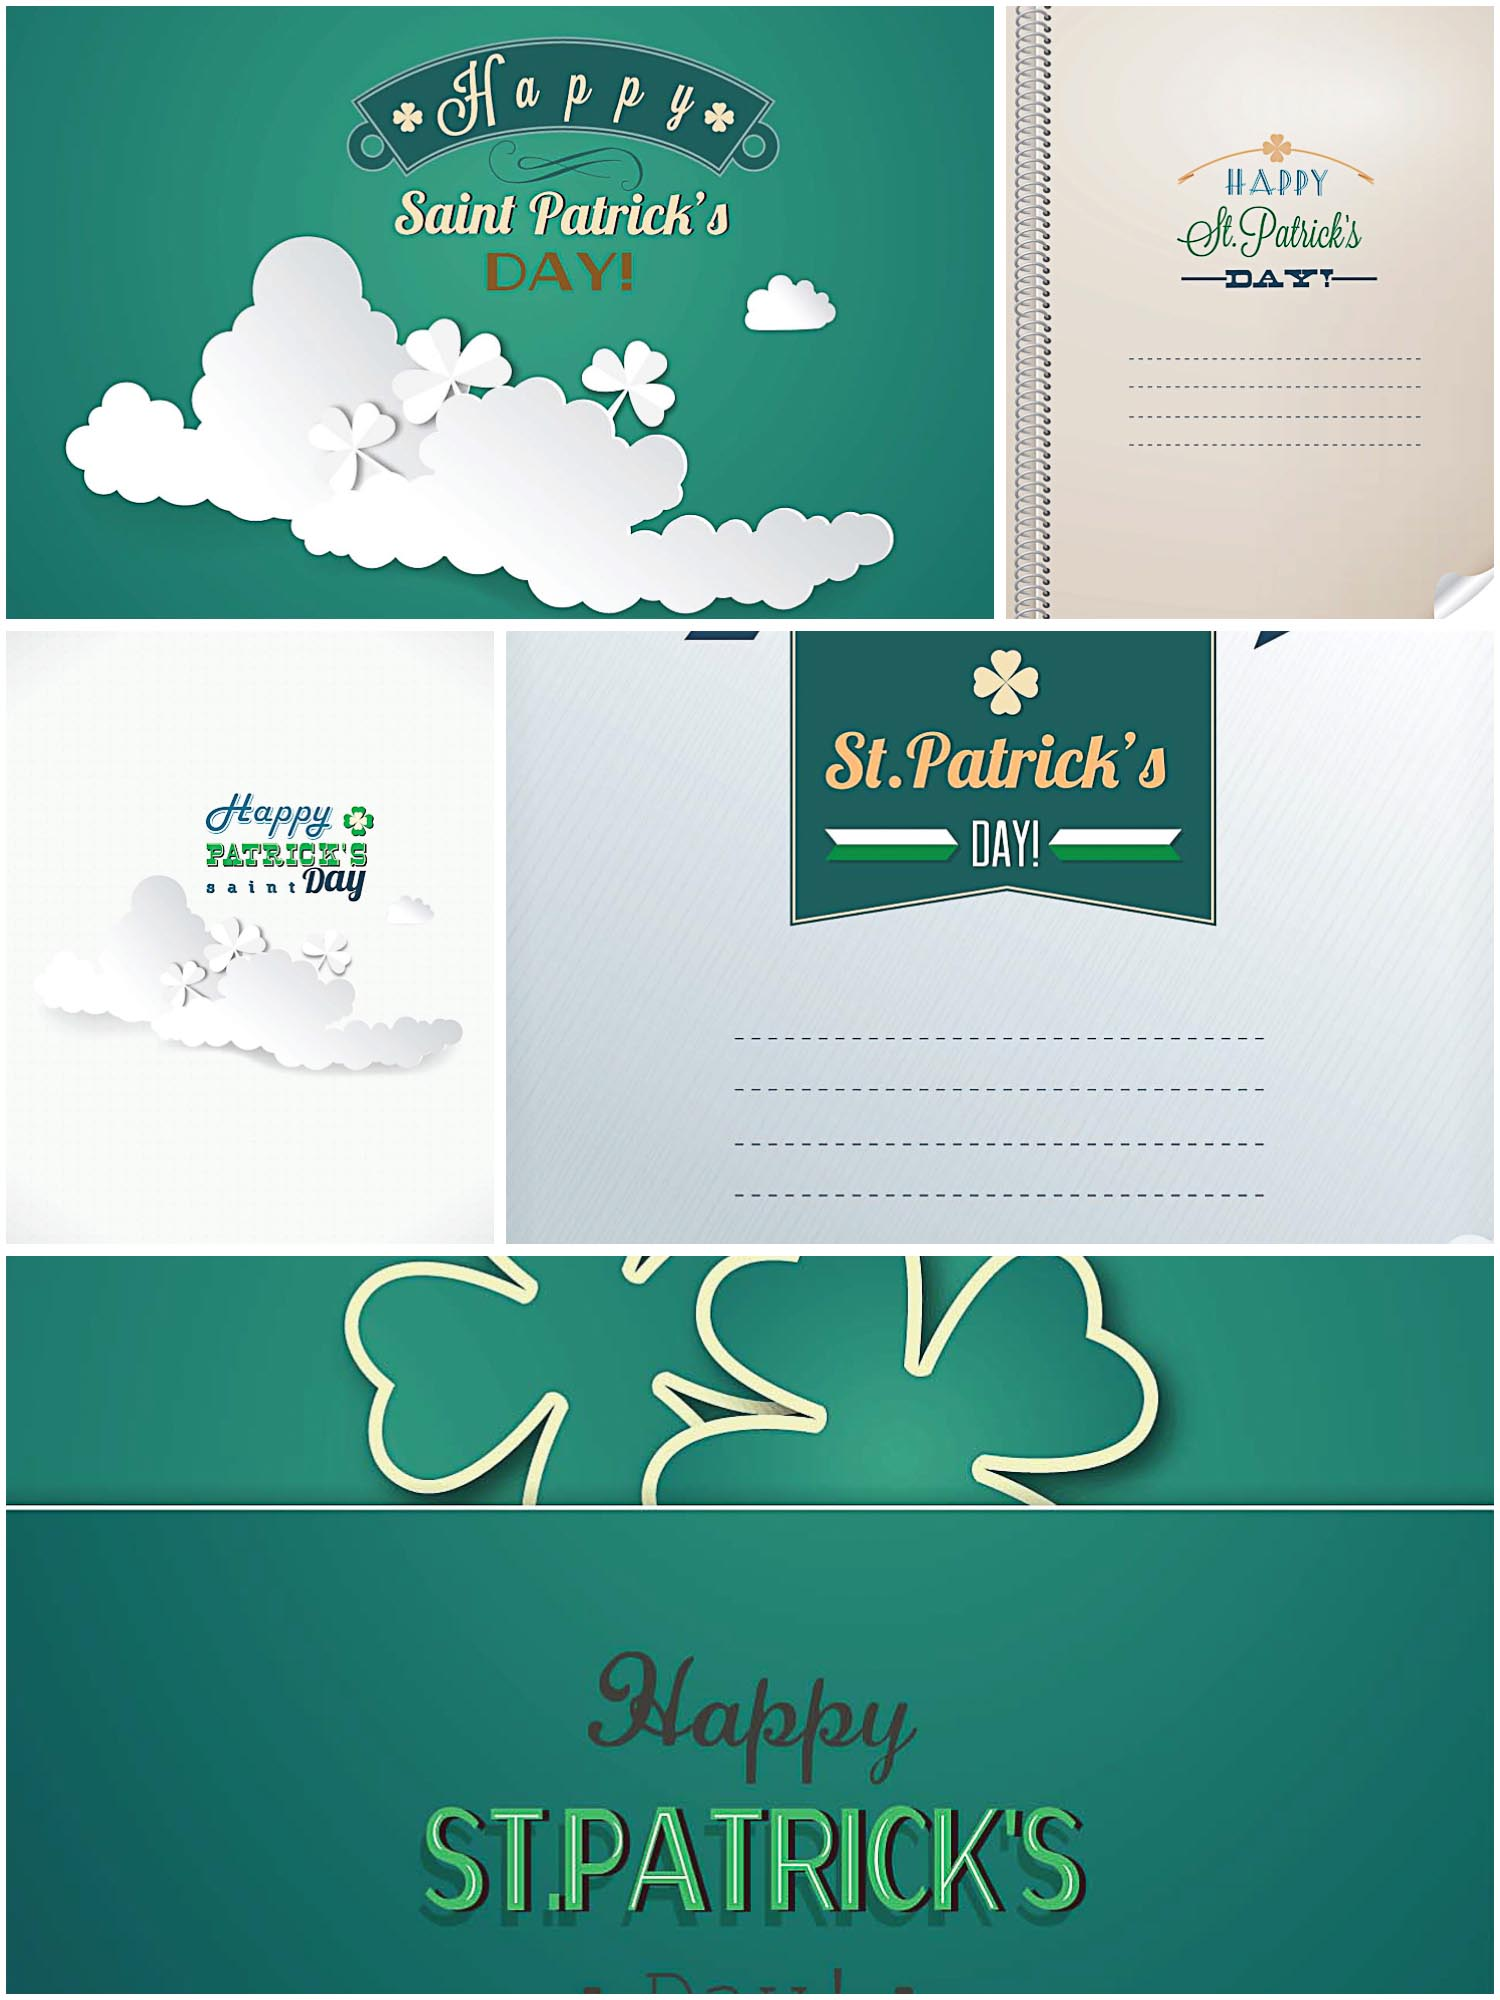 St.Patrick's Day greeting card light green vector